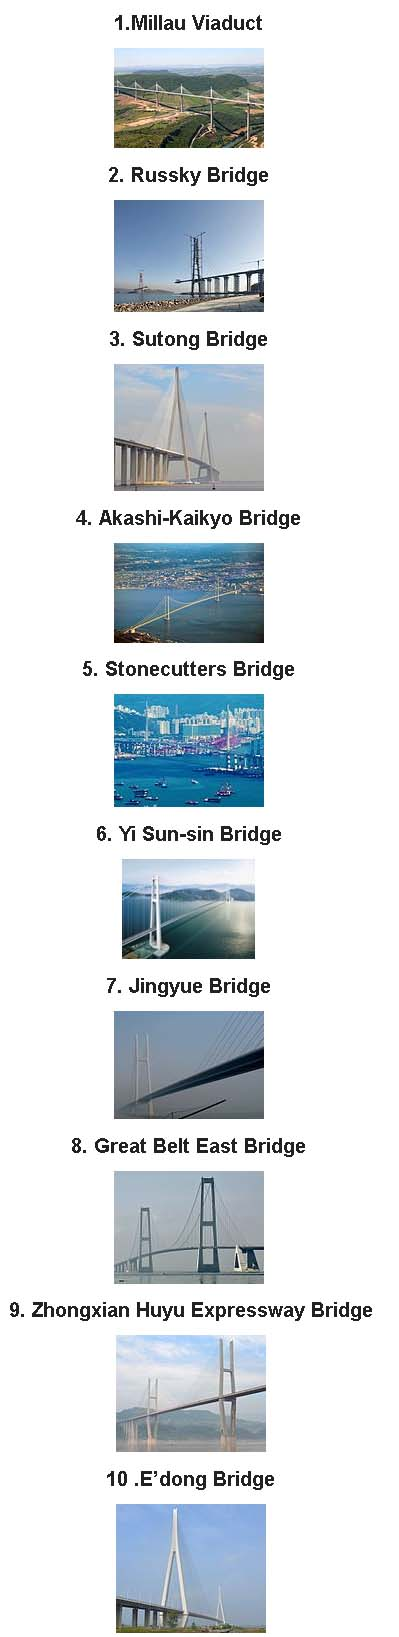 TOP 10 TALLEST BRIDGES OF THE WORLD